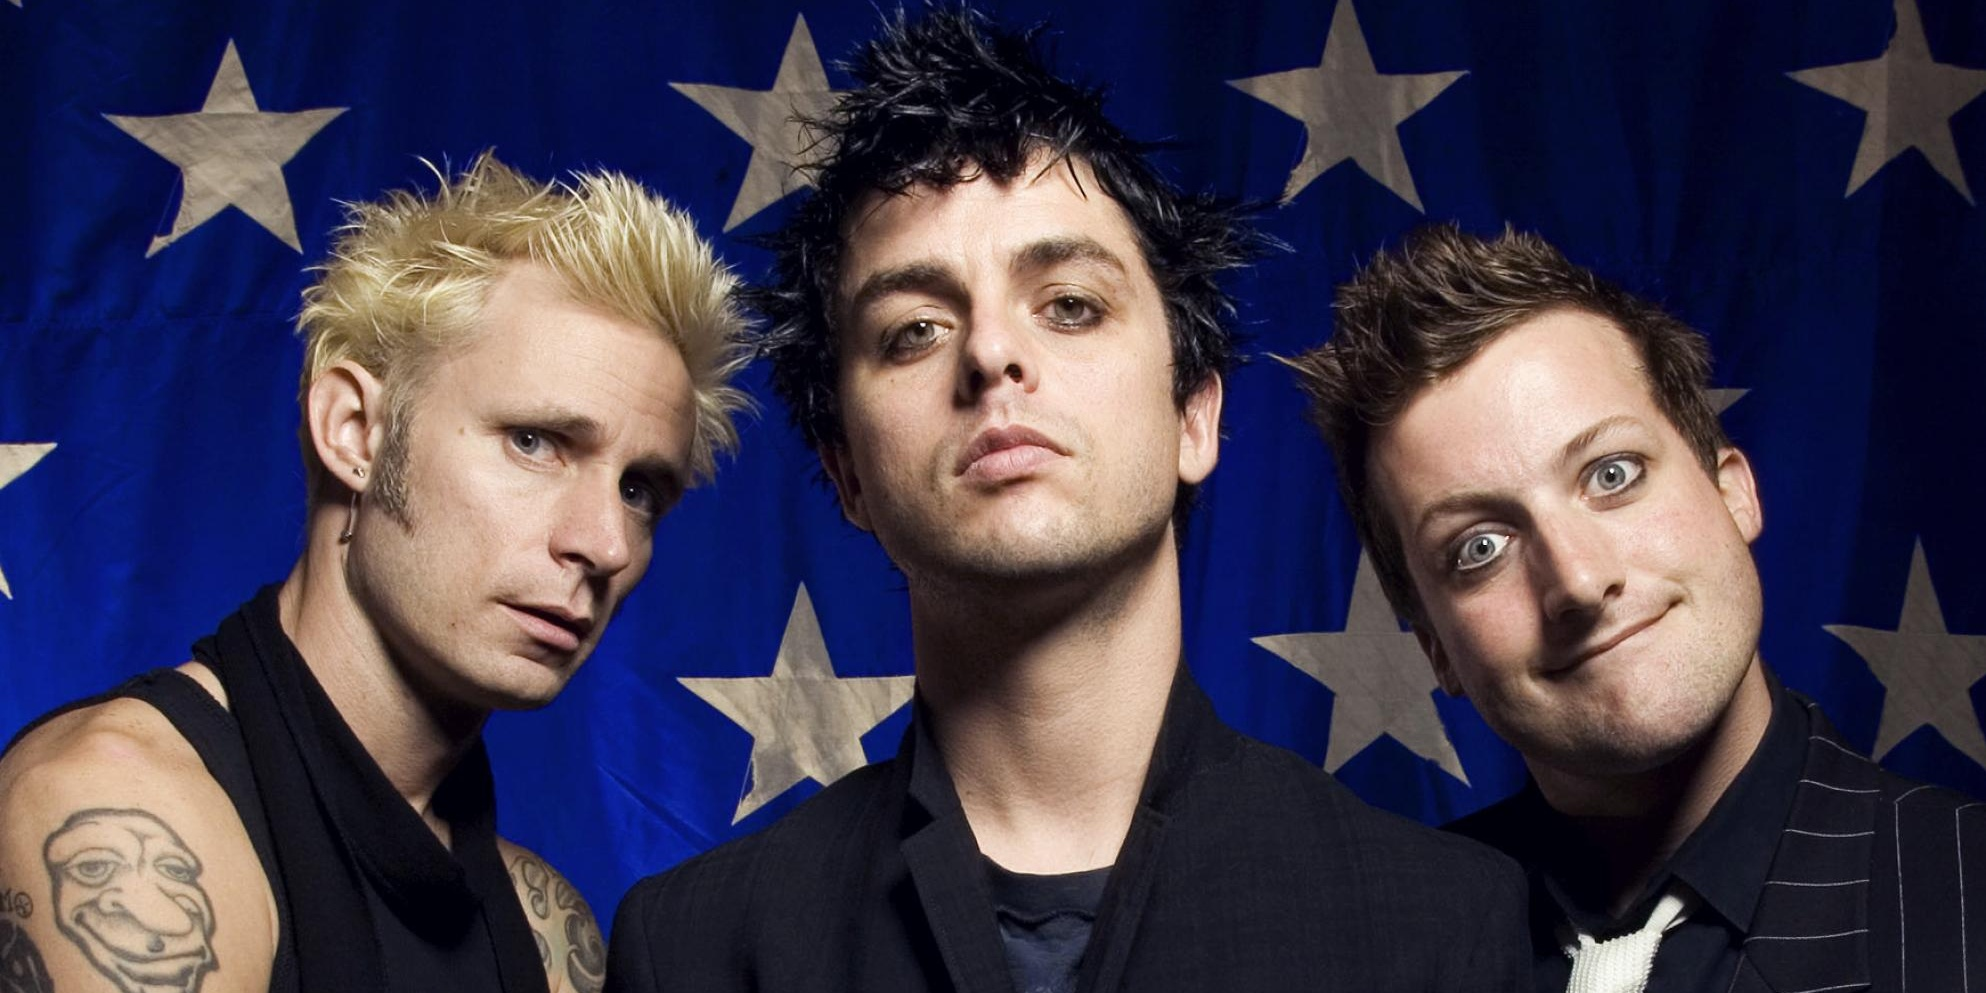 GREEN DAY announces Asia tour – shows in Singapore, Manila, Hong Kong and more confirmed